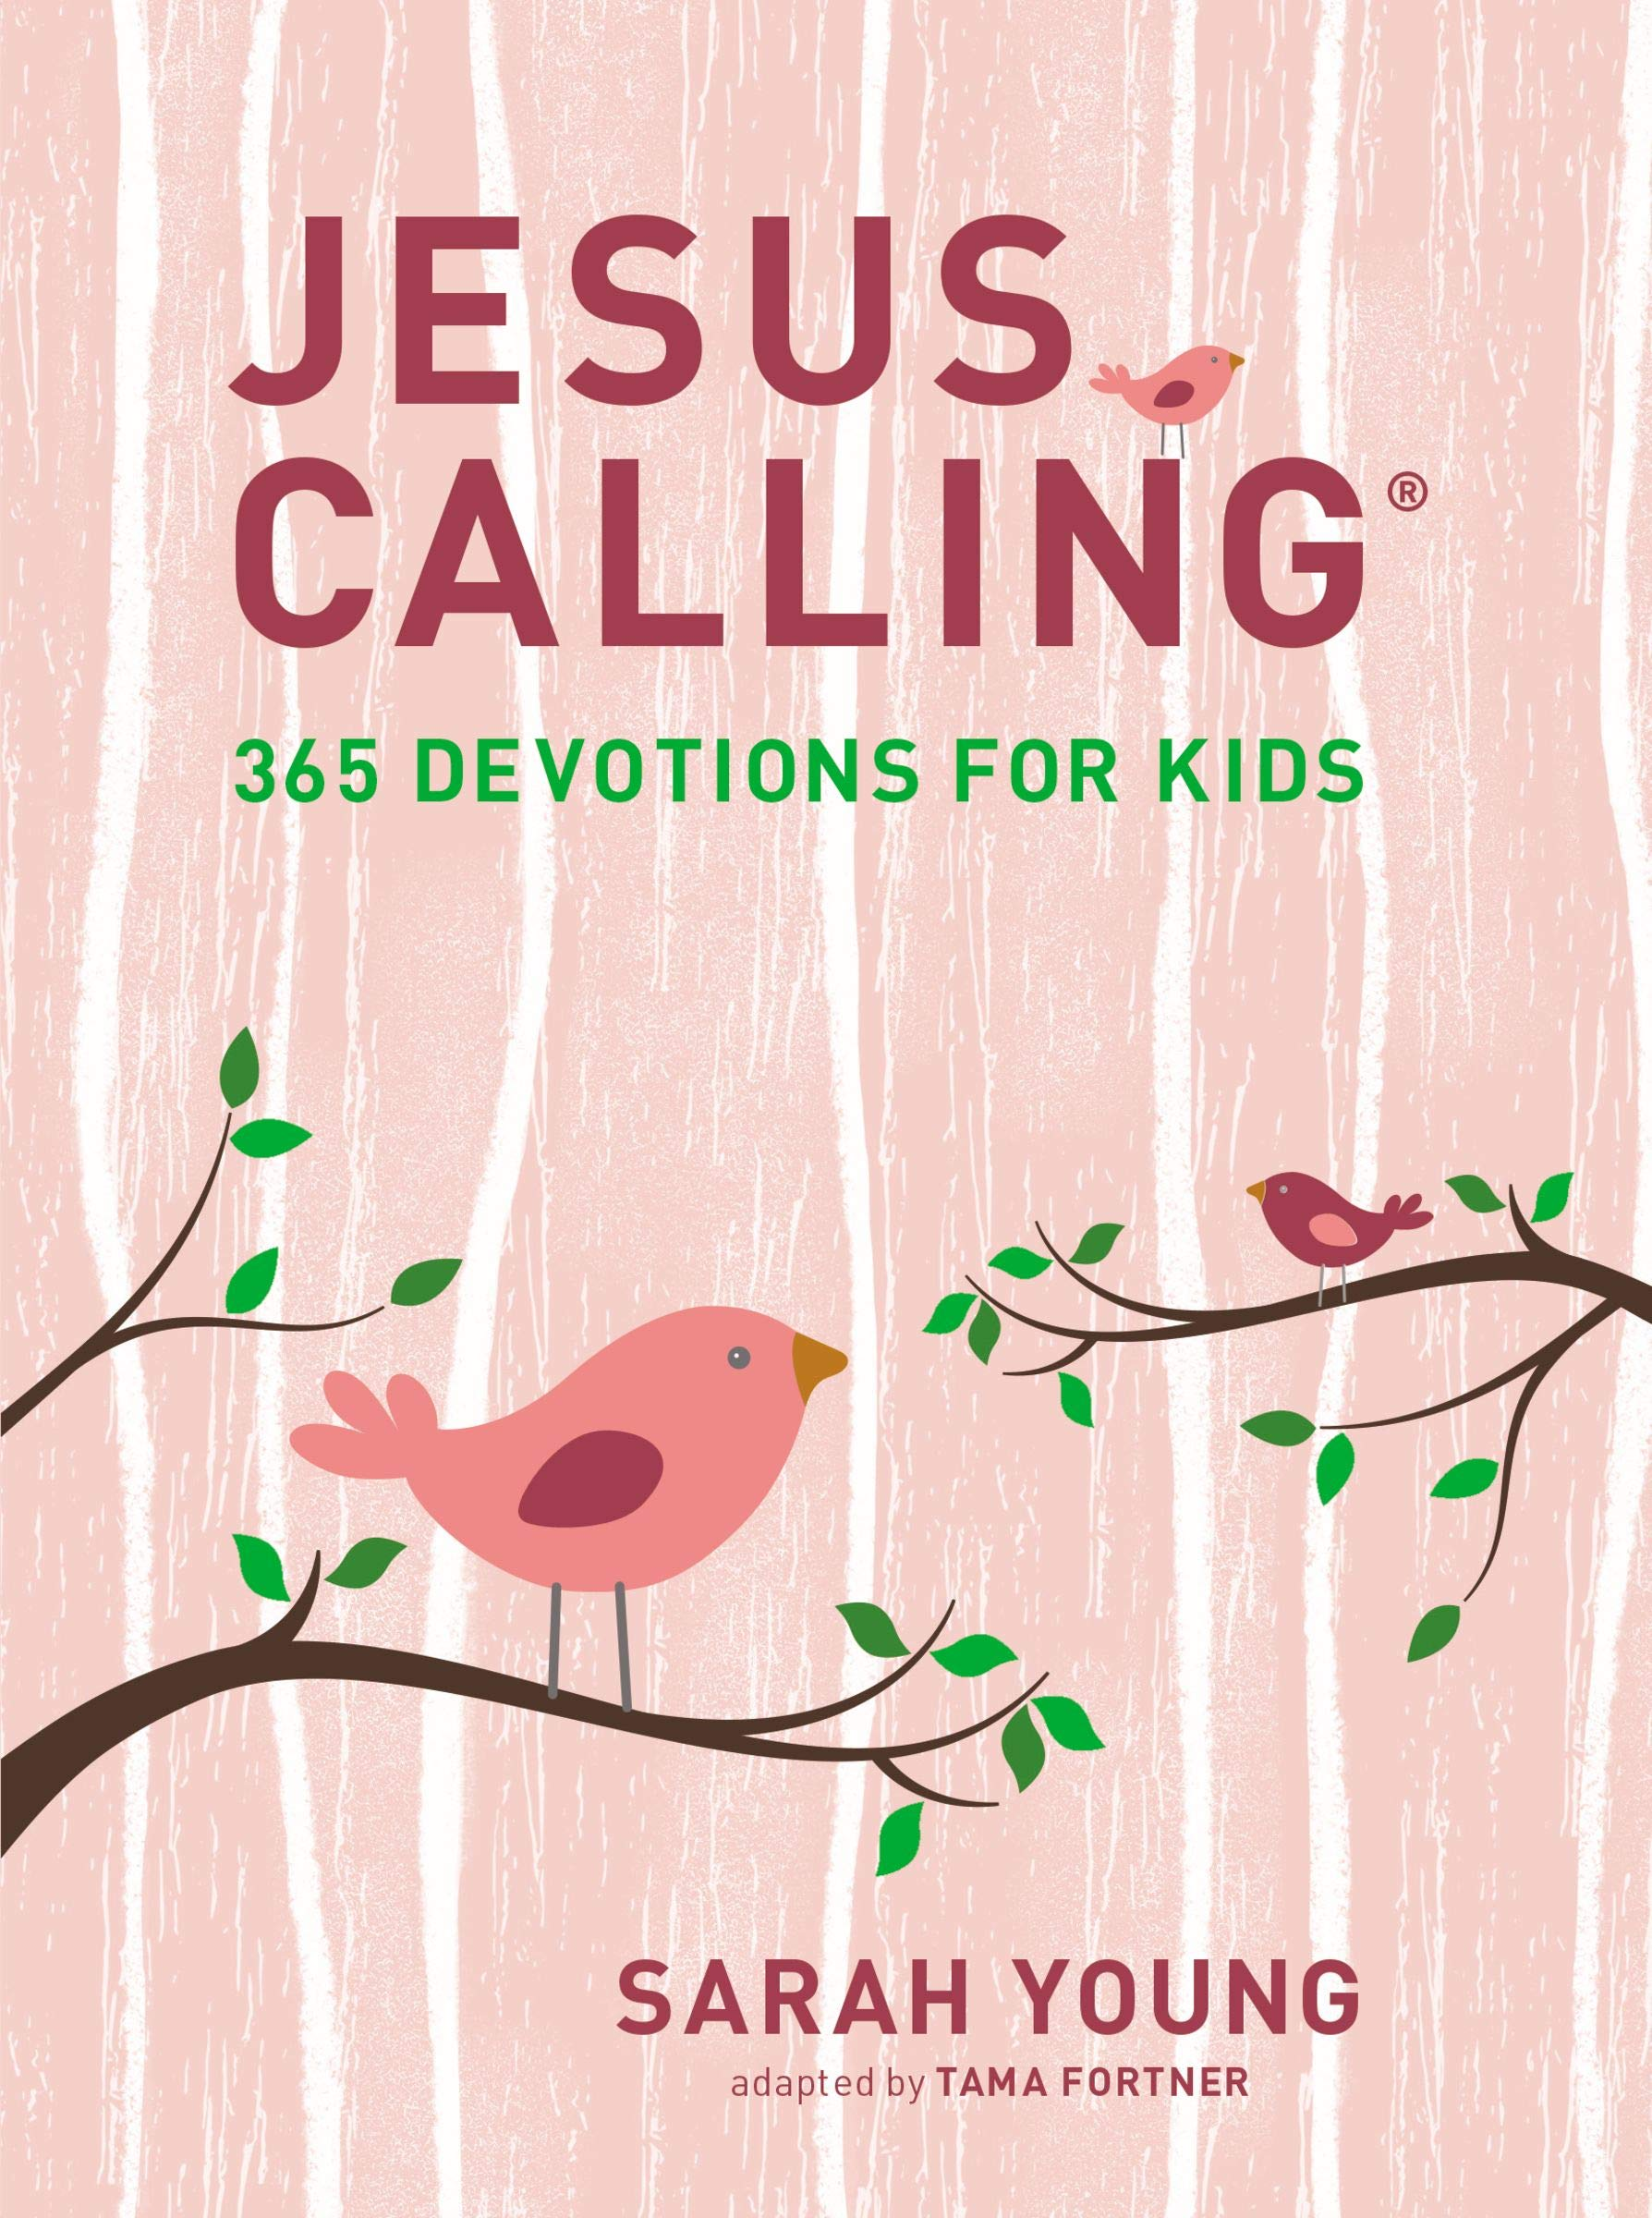 Jesus Calling 365 Devotions For Kids Girls Edition Young Sarah 9781400216765 Amazon Com Books